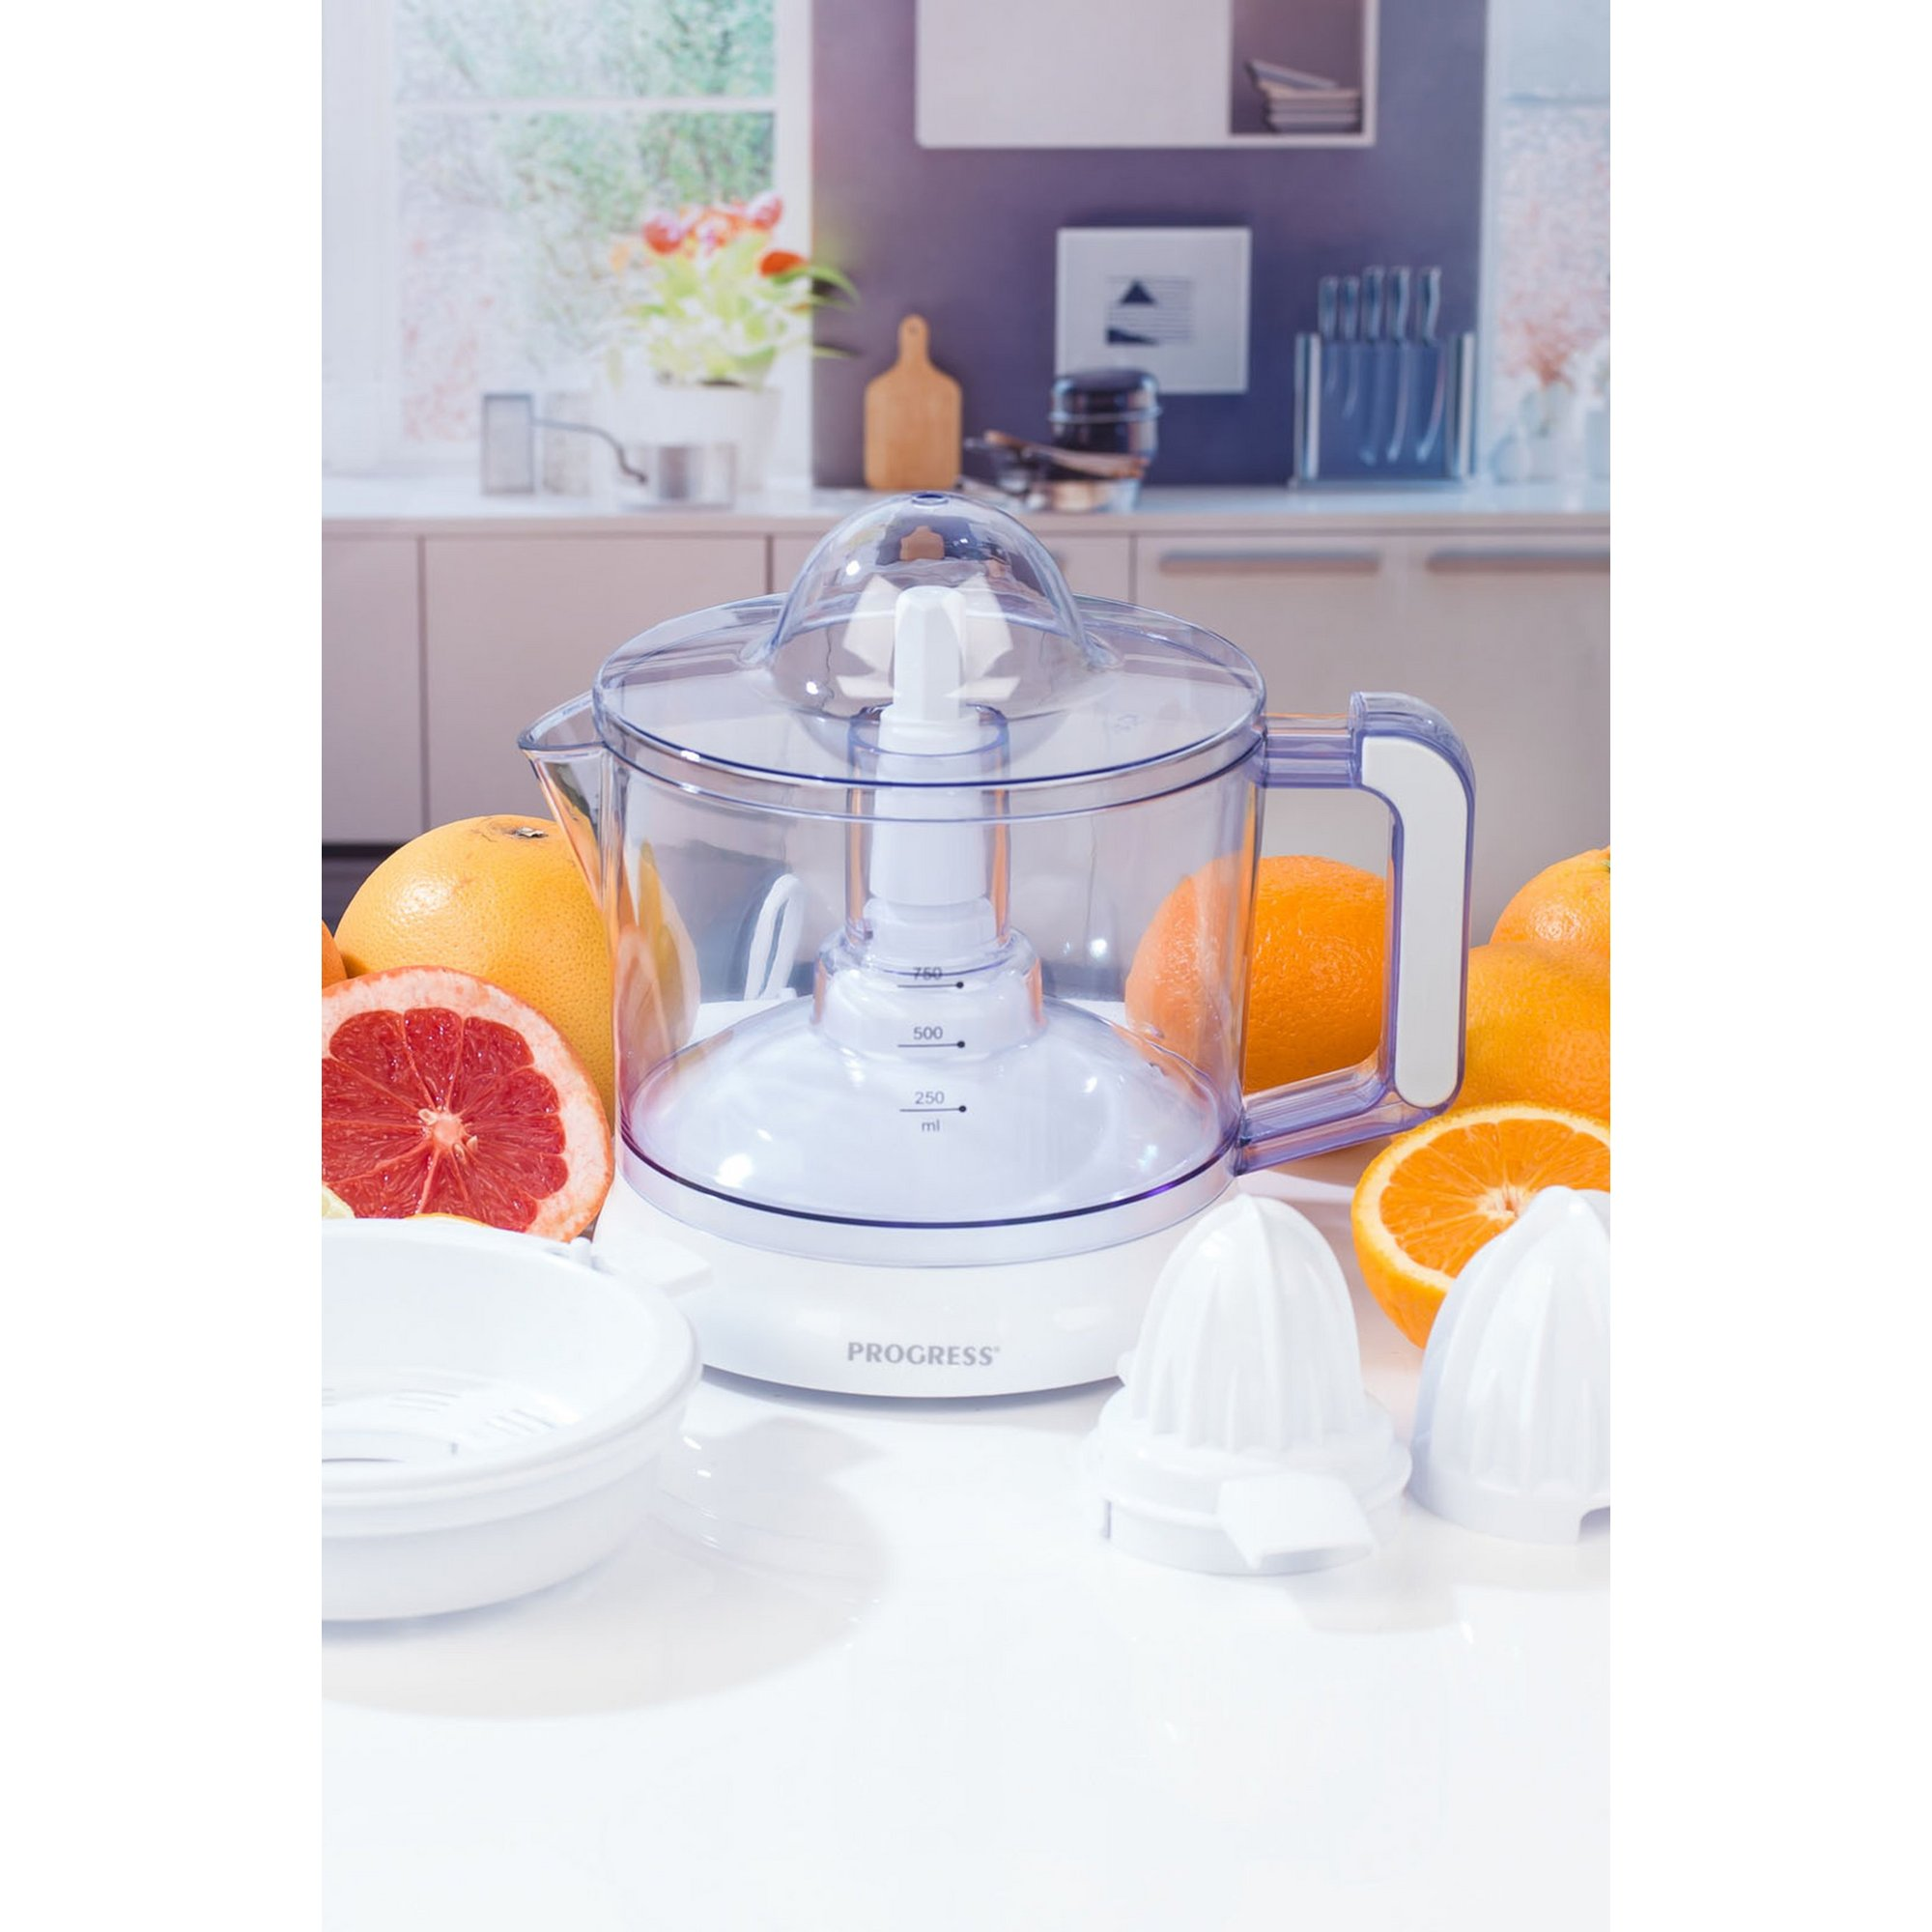 Image of Progress Electric Citrus Juicer with Adjustable Pulp Filter